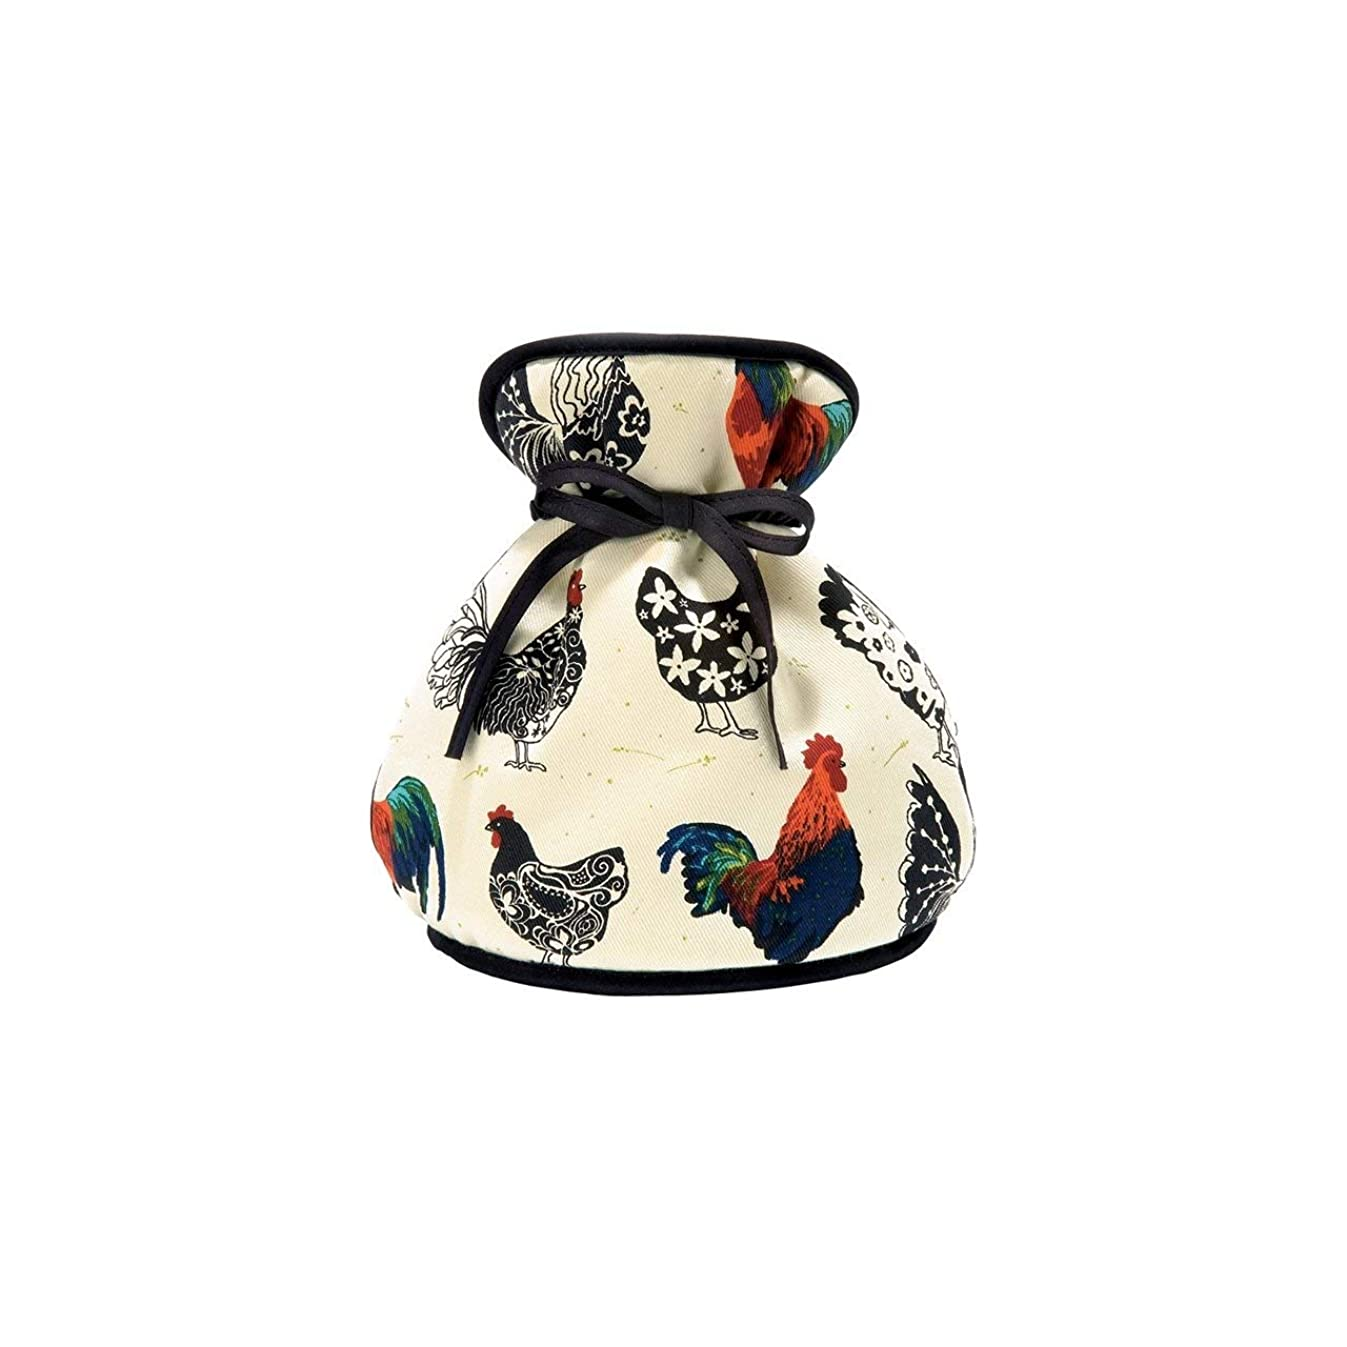 Ulster Weavers Rooster Muff Decorative Tea Cosy